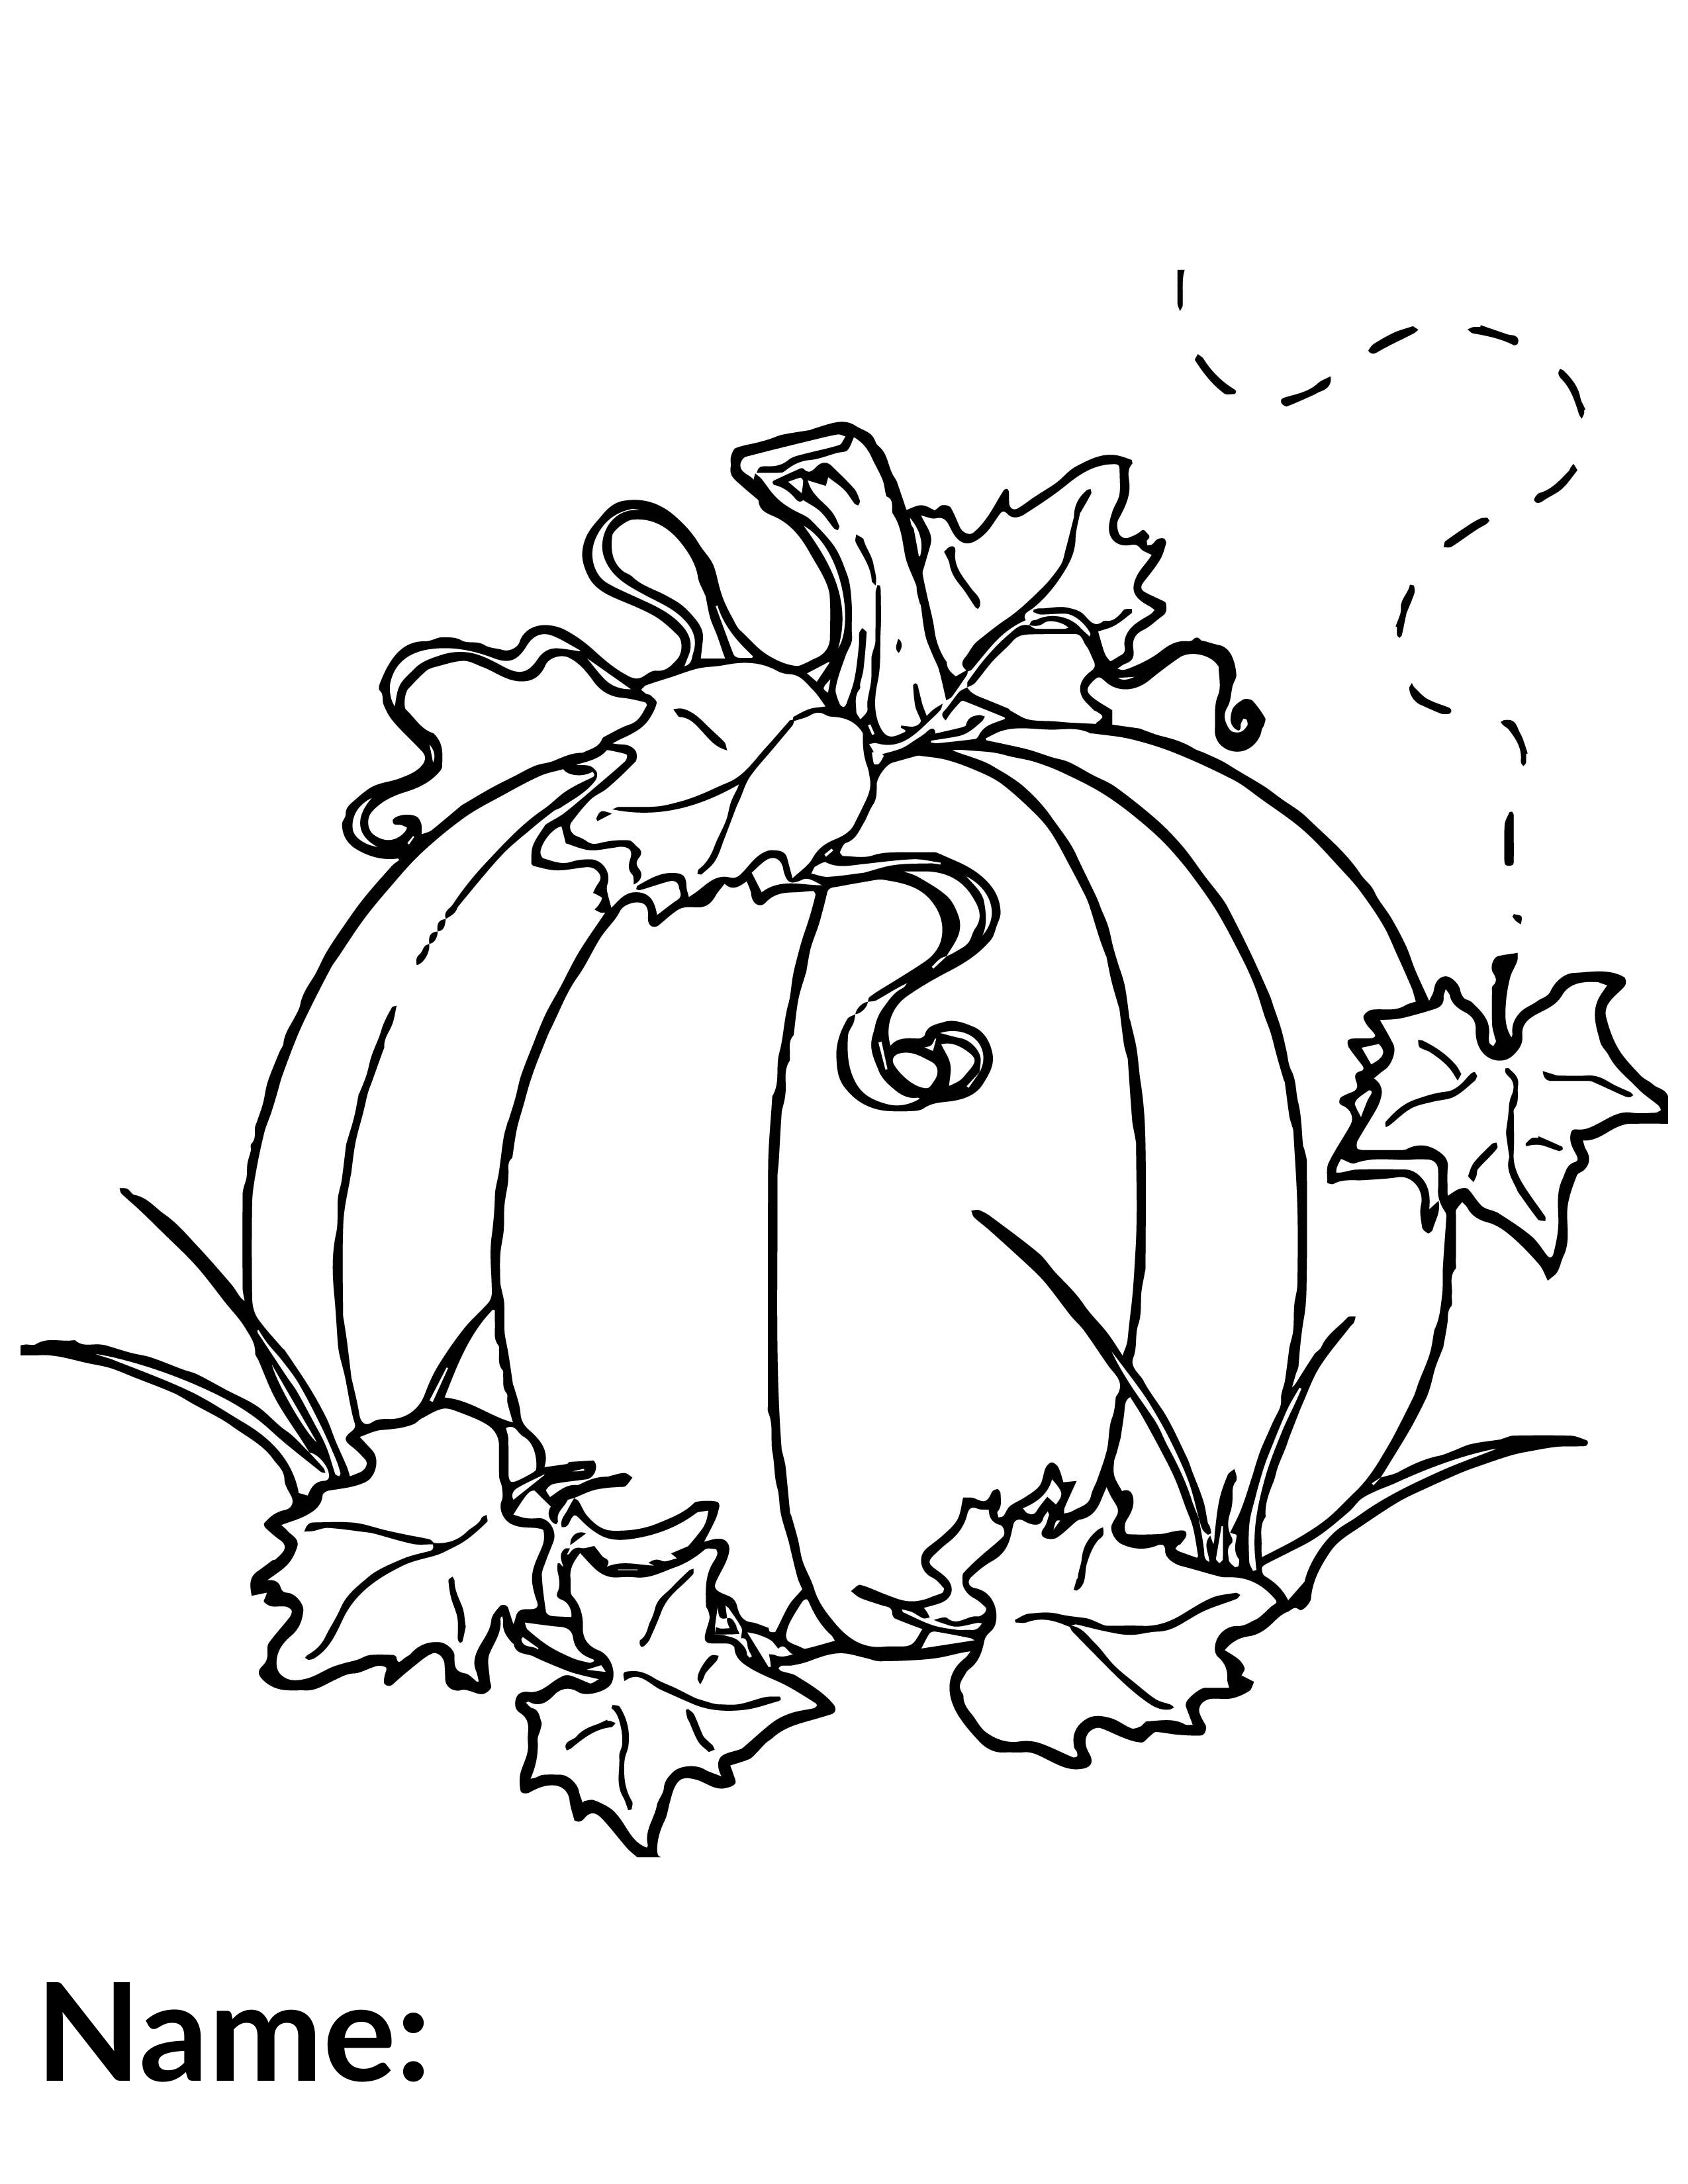 2020 Pumpkin - Coloring Contest